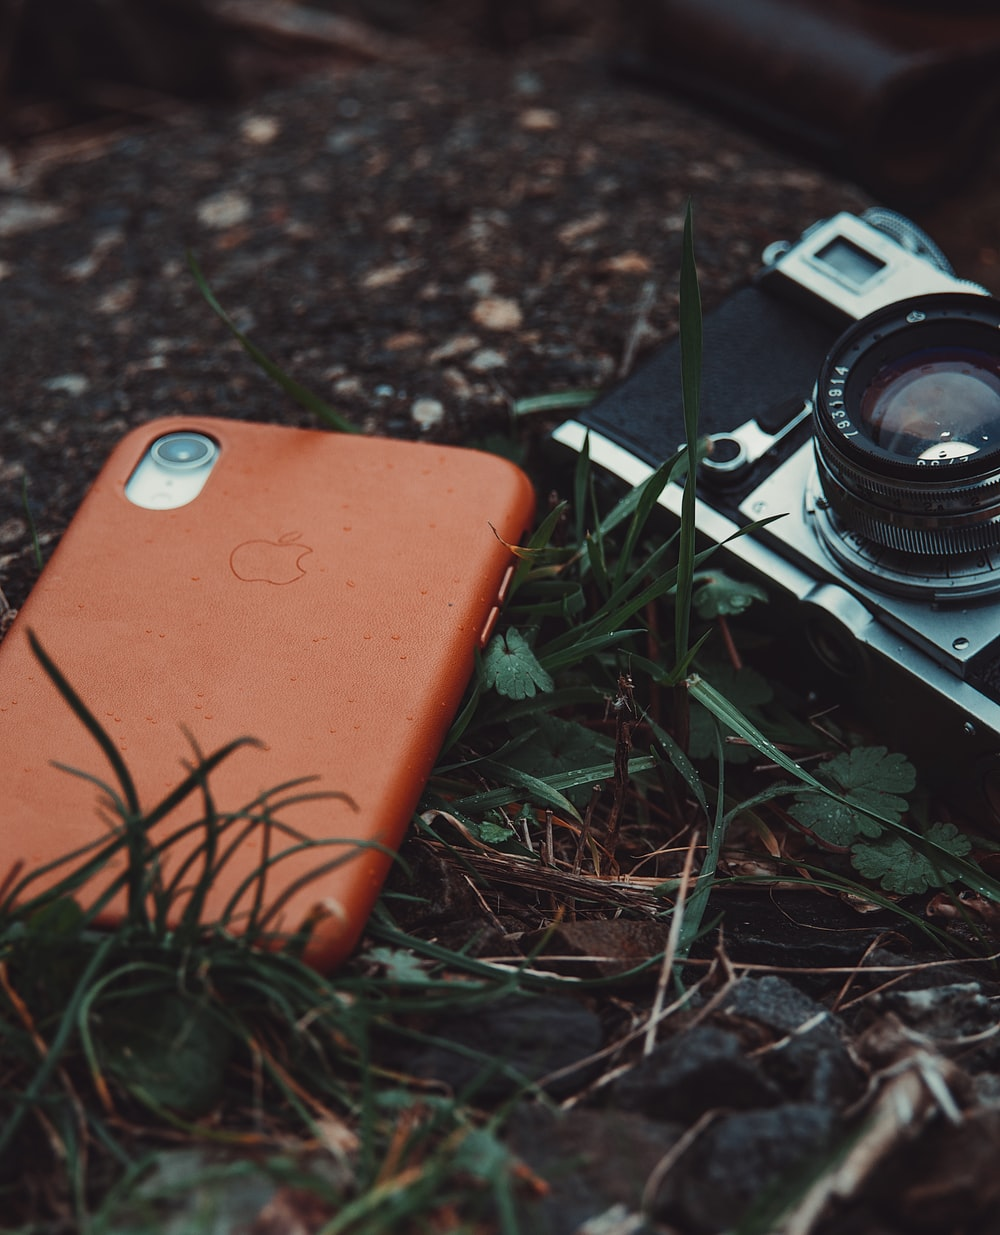 red iPhone and gray film camera on grasses closeup photography